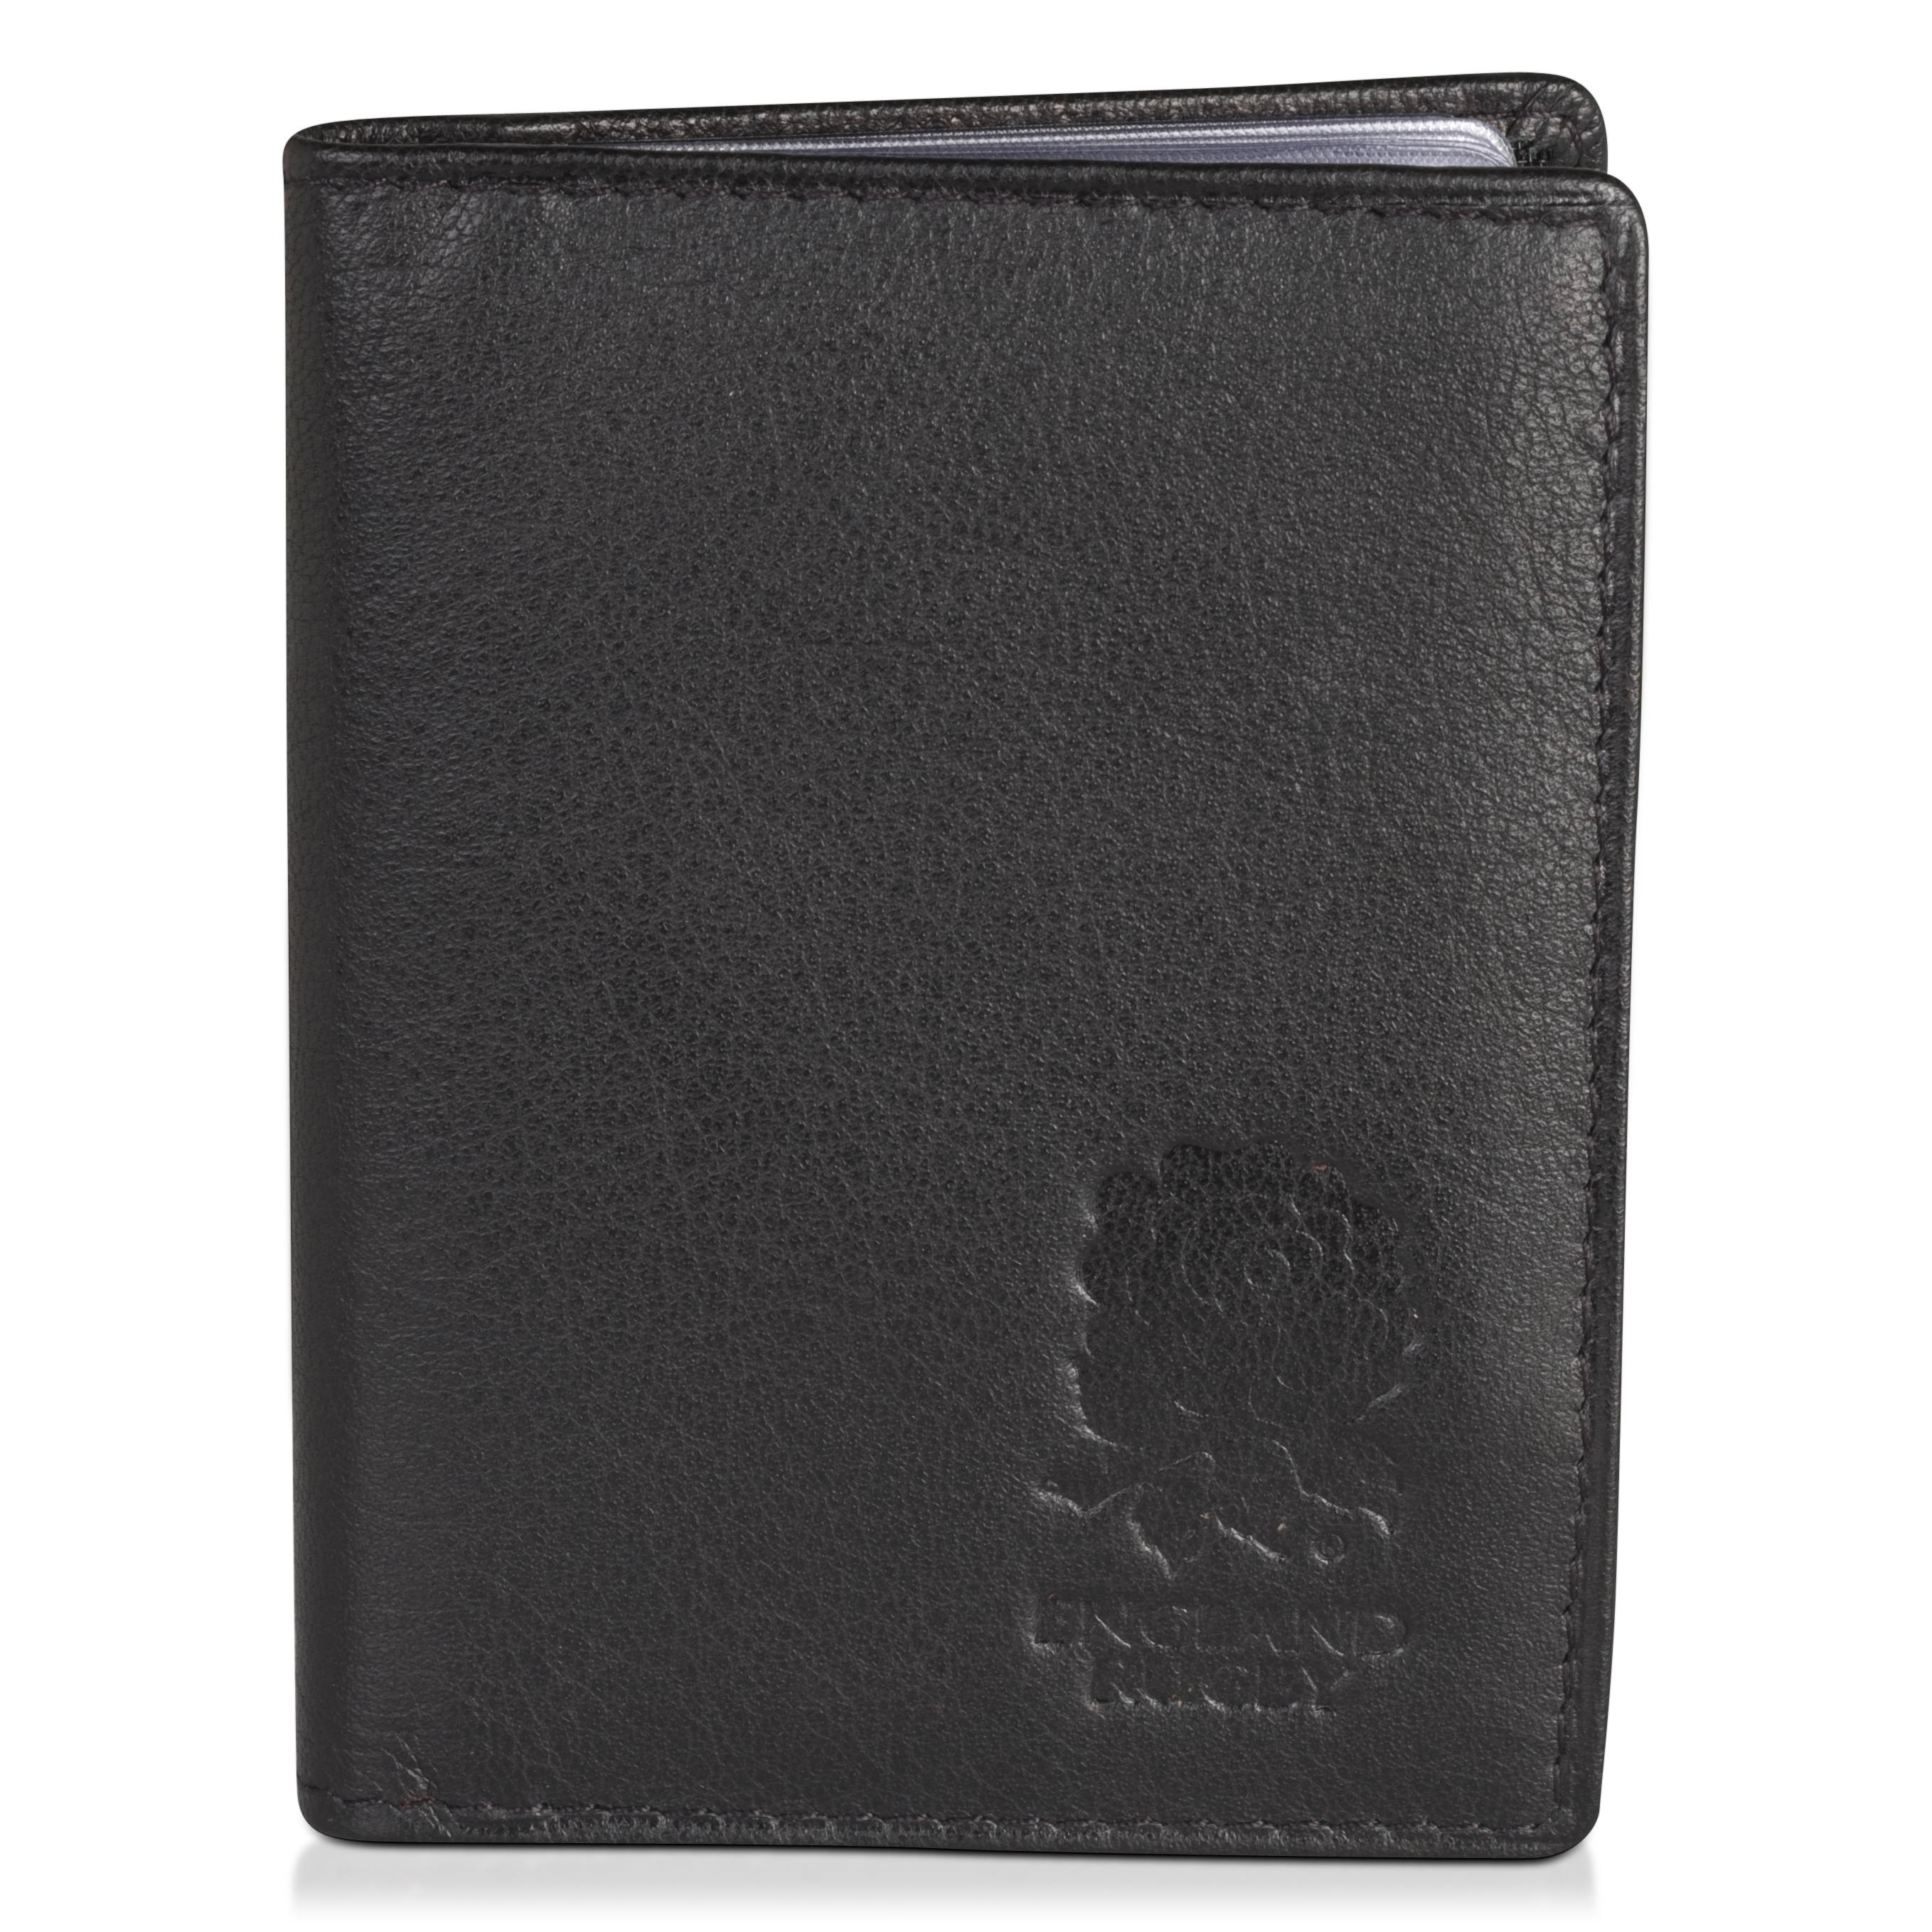 England Rugby Black Nappa Leather Travel Card Holder